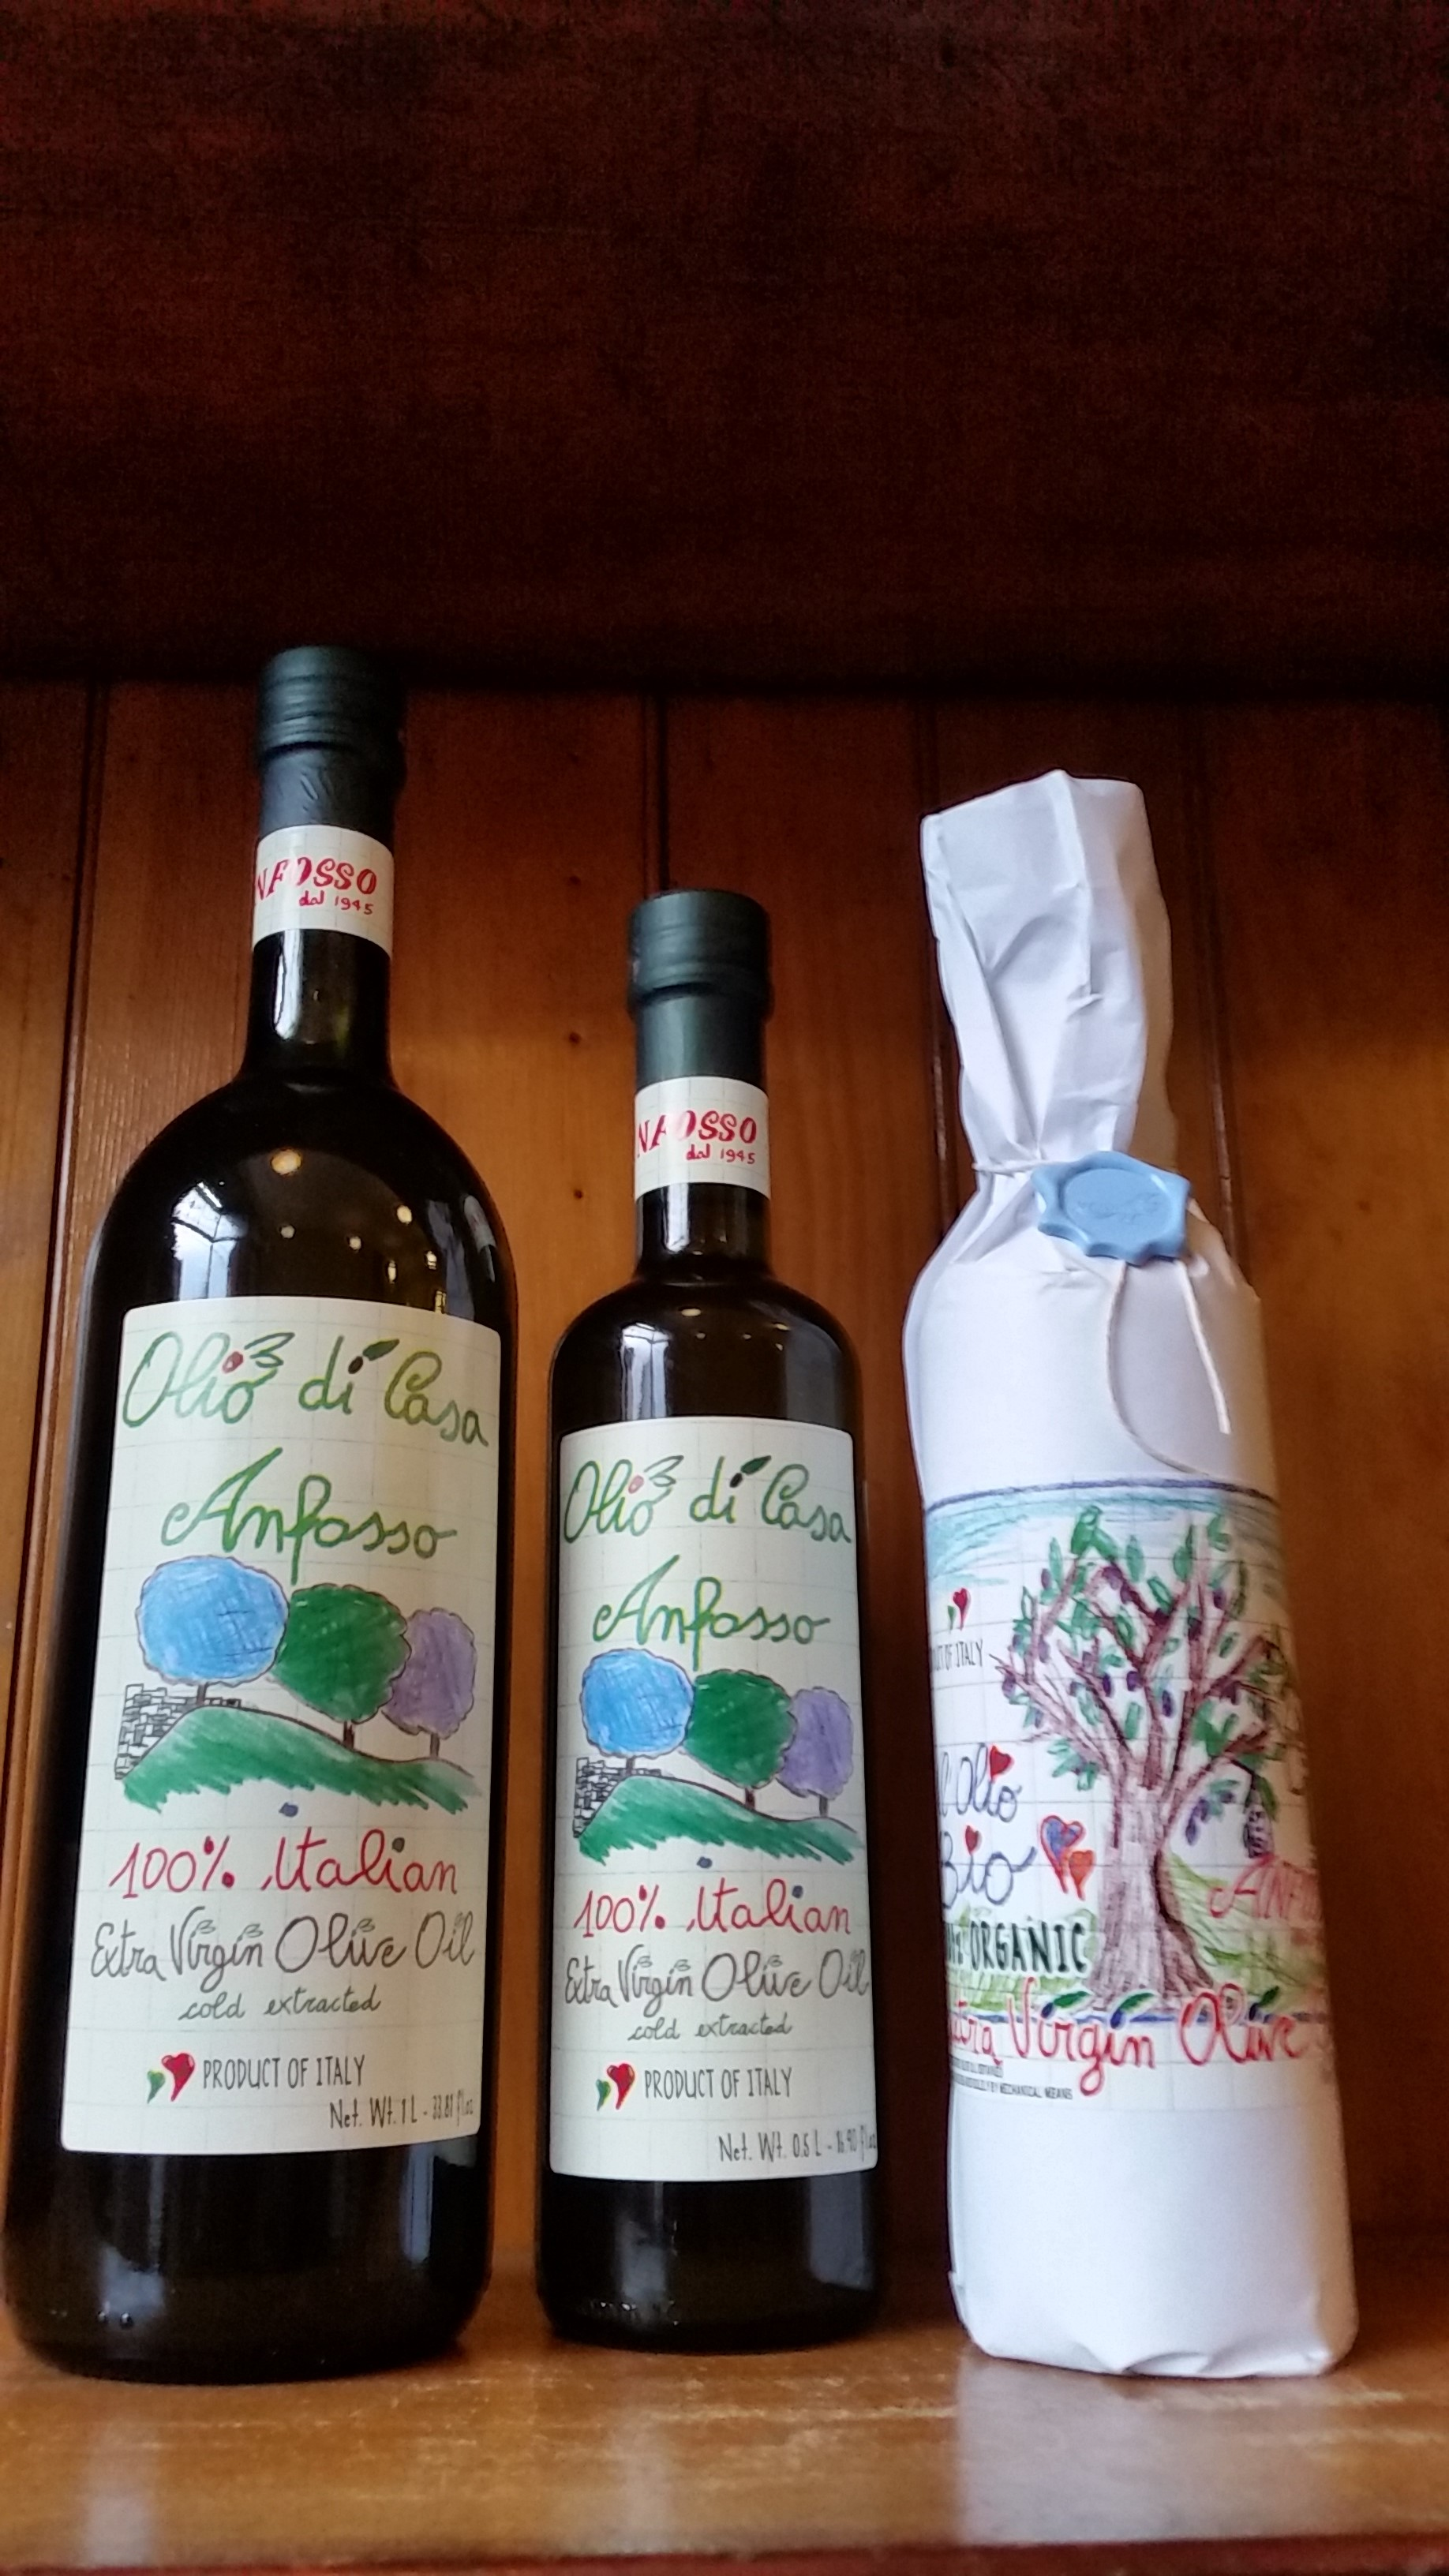 Extravergin olive oil from Ligurian region  by Anfosso